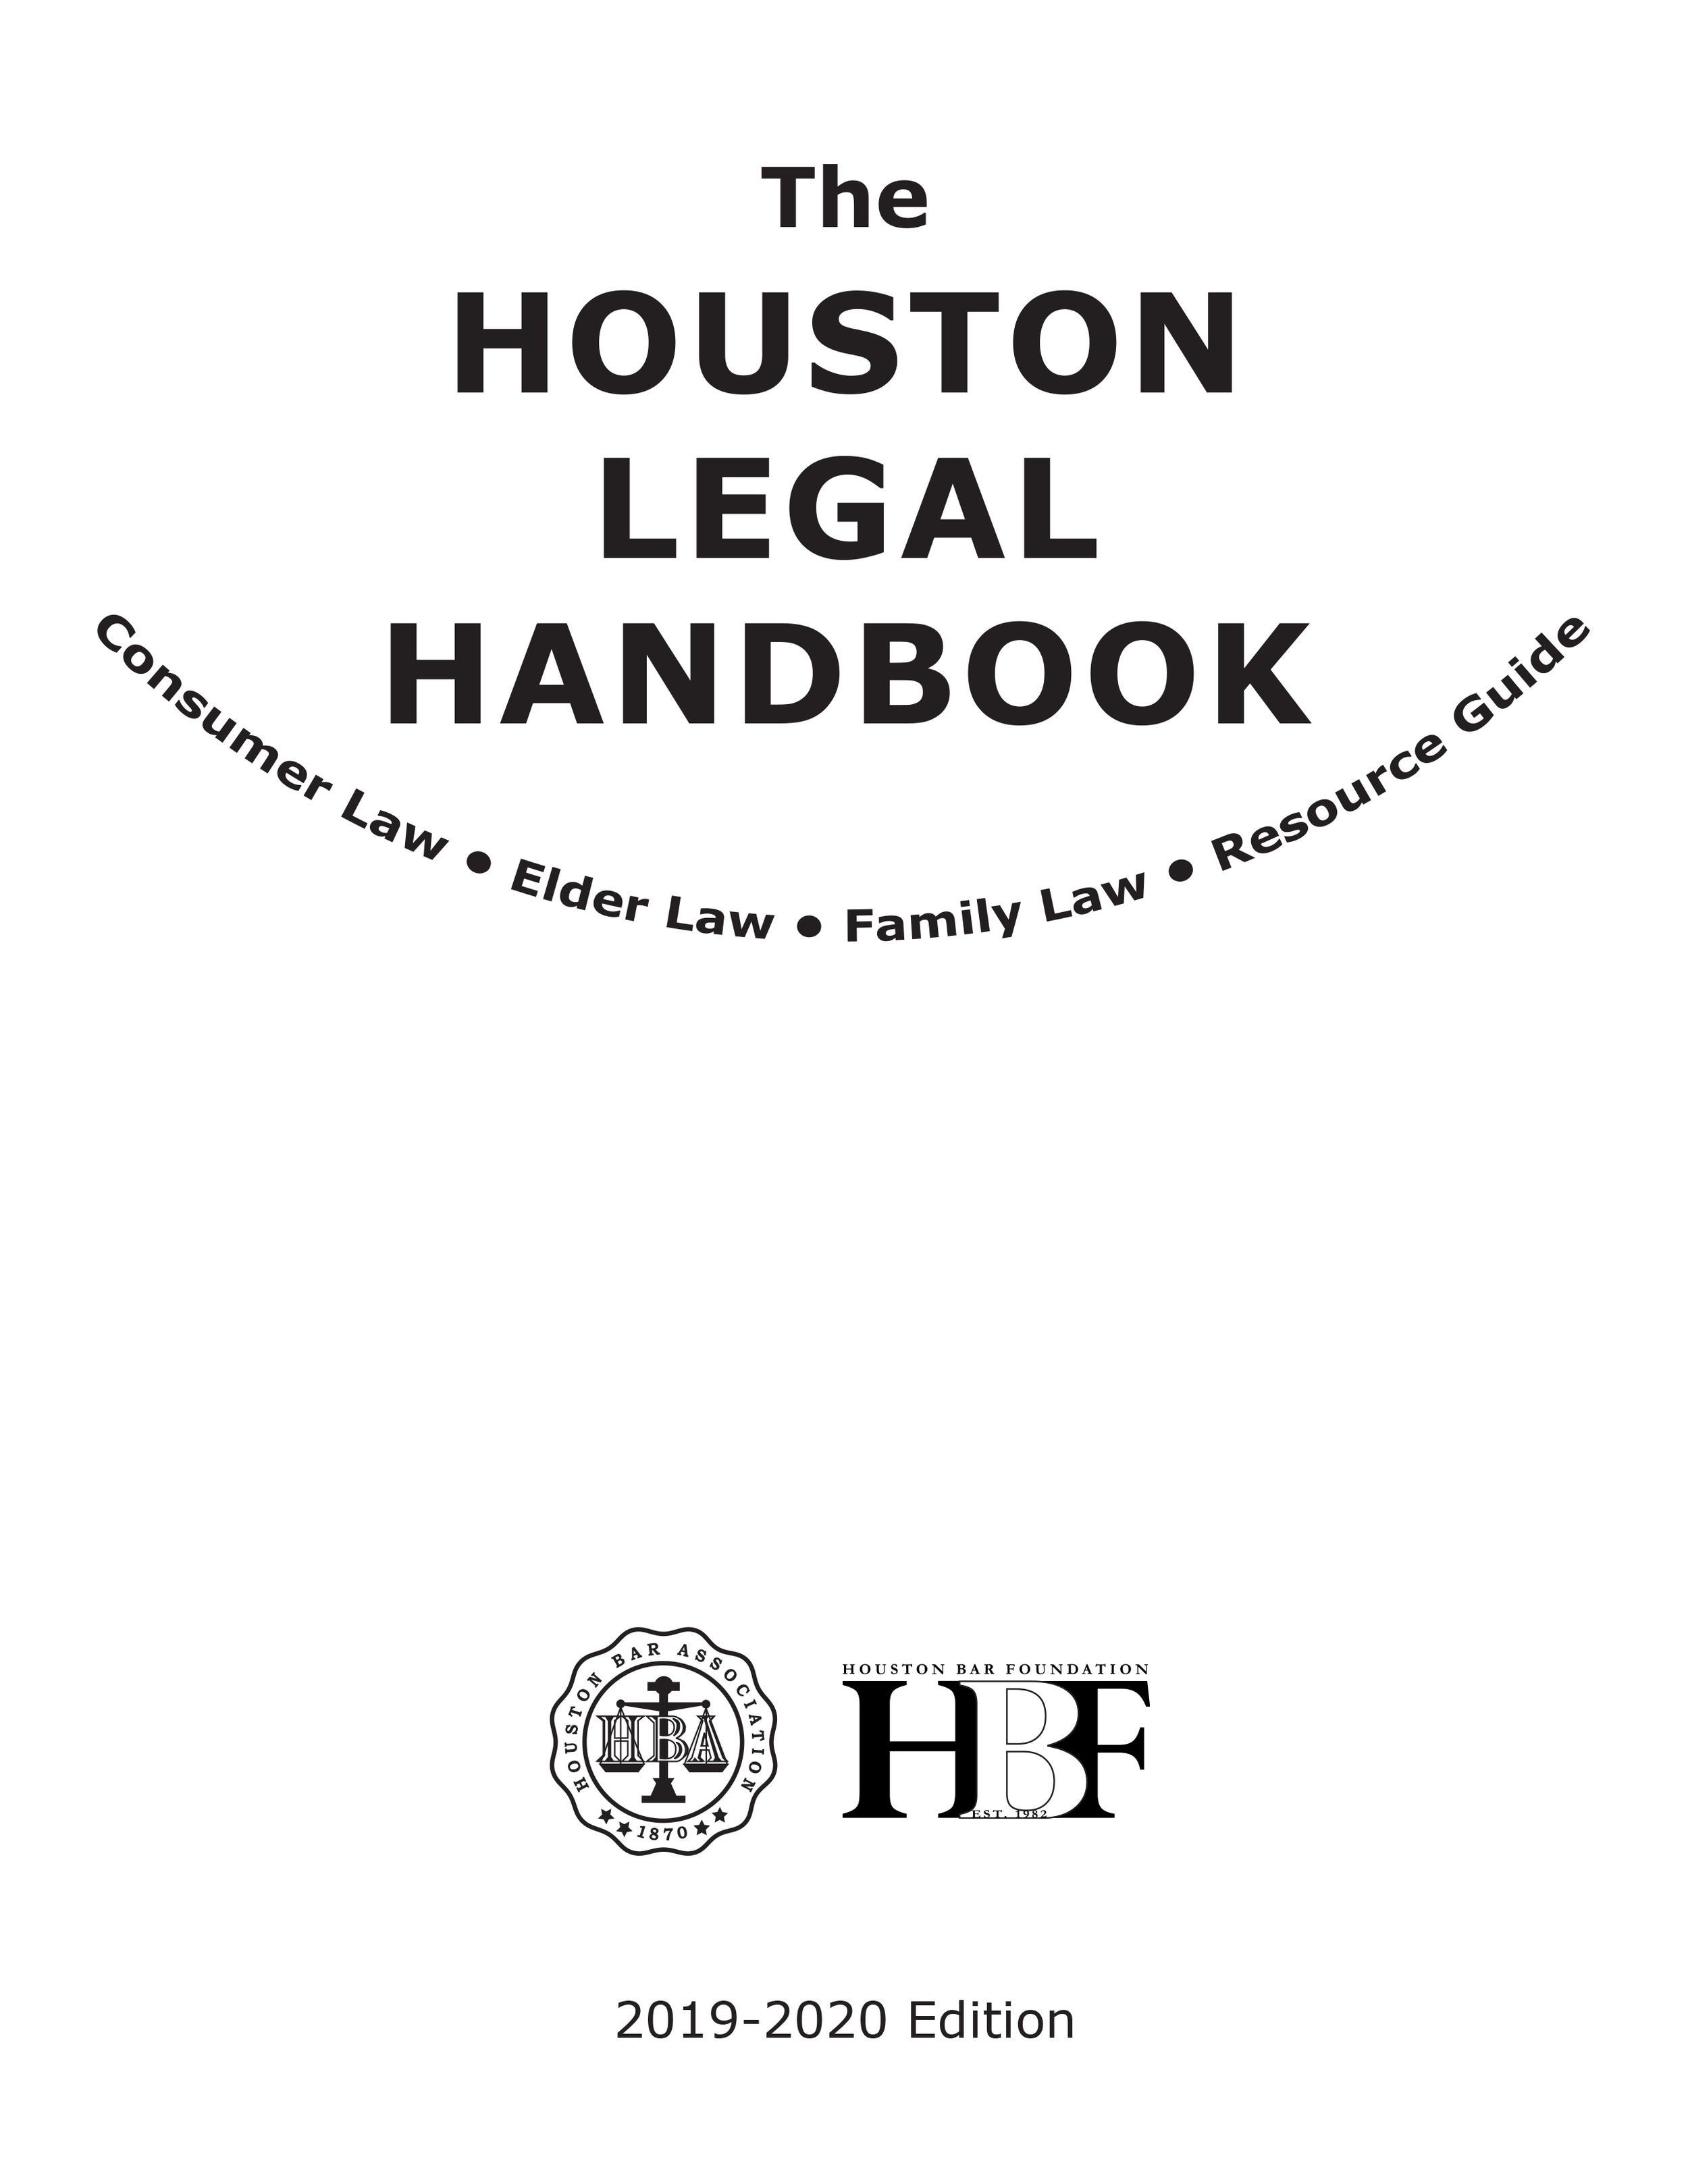 The Houston Legal Handbook cover